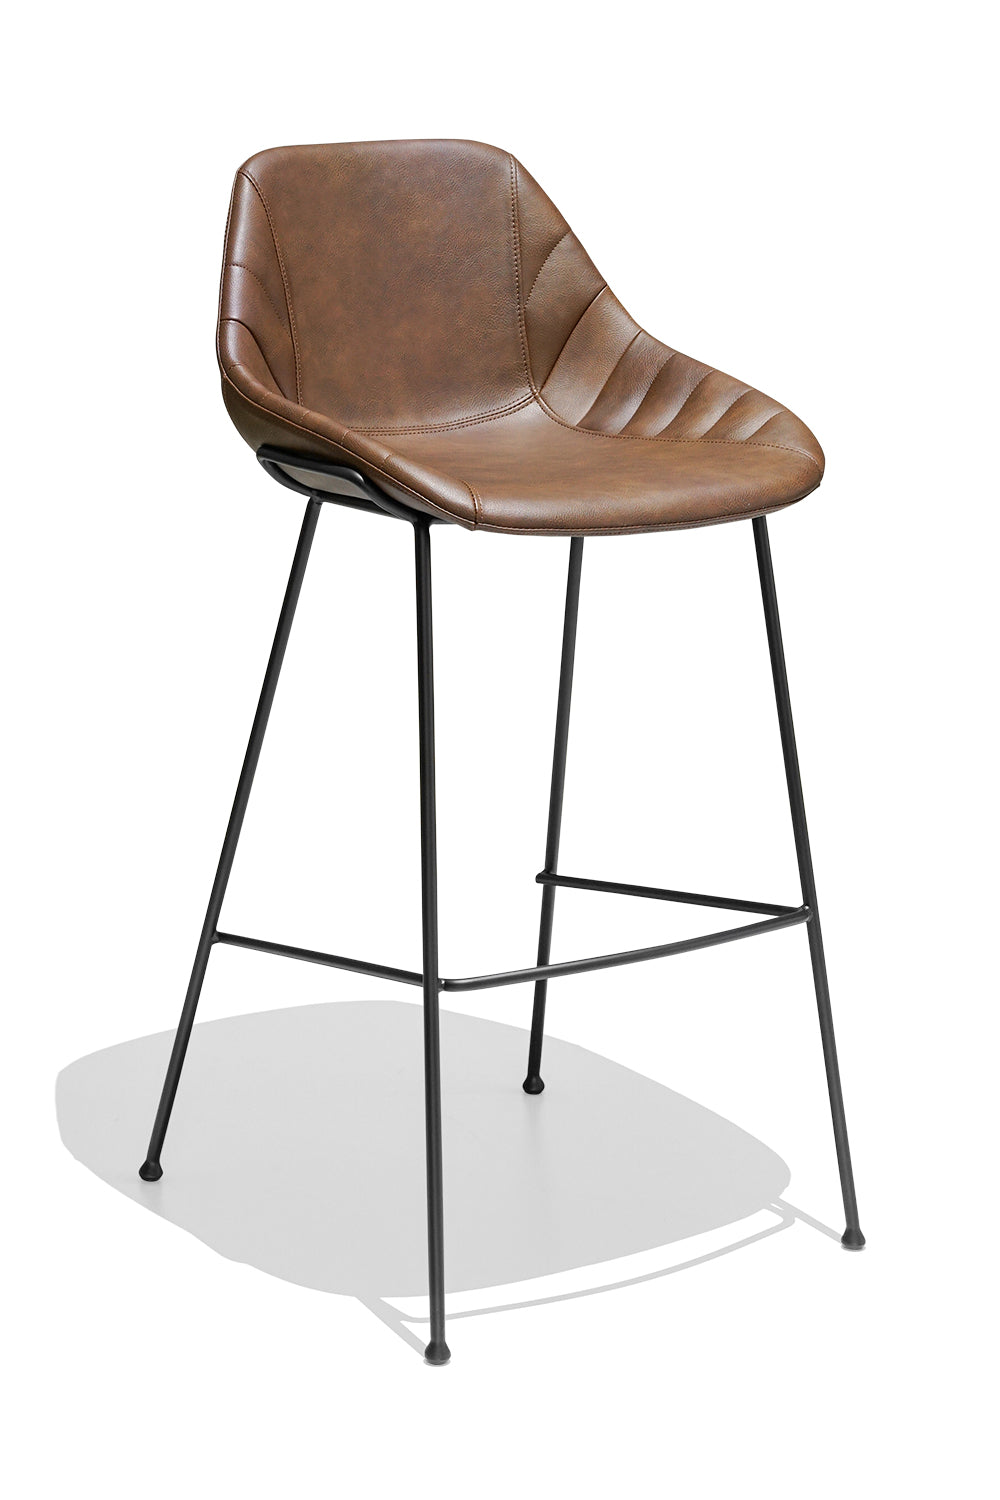 NATALIE bar stool